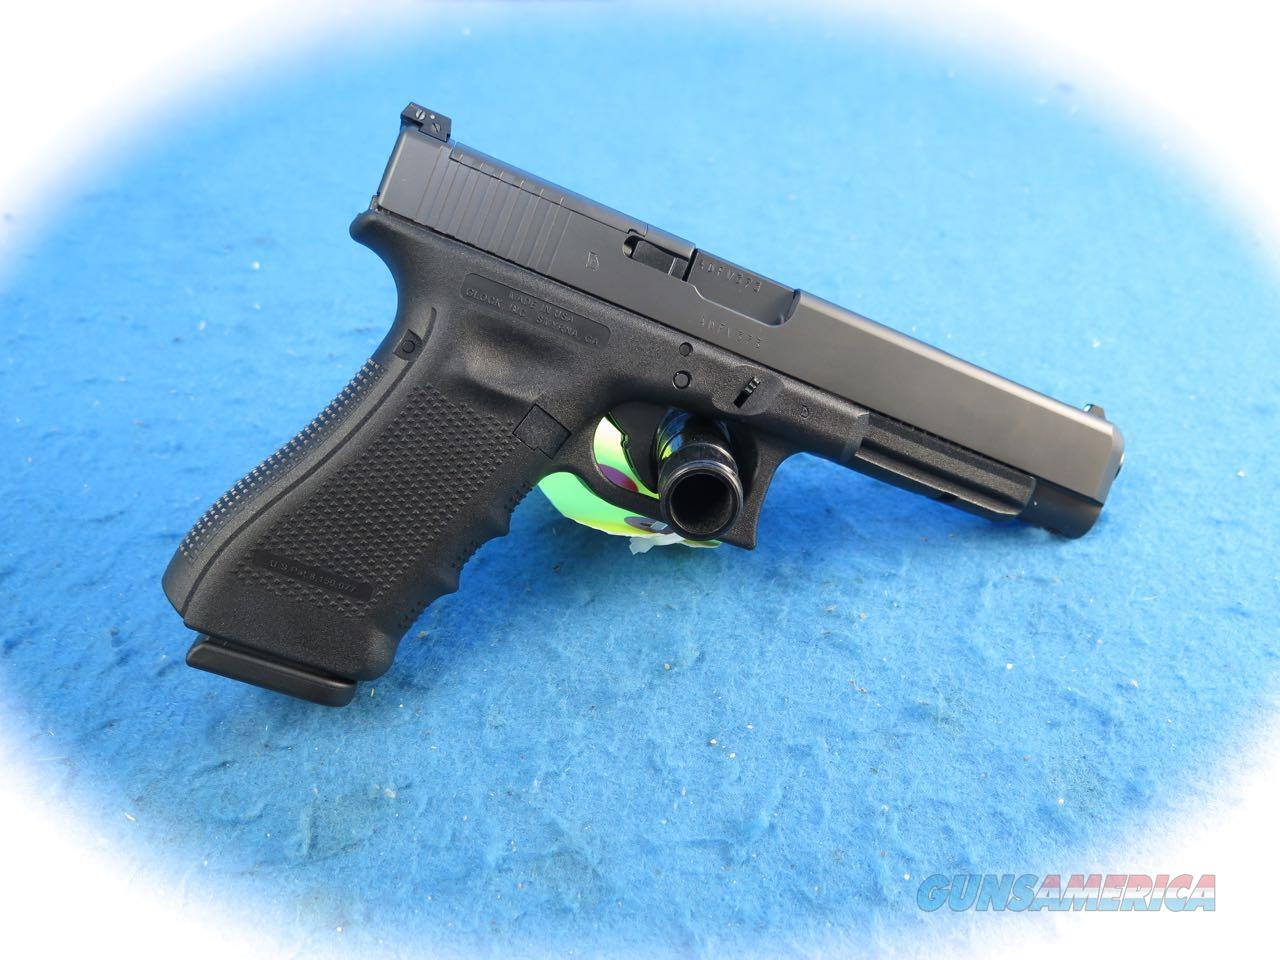 Glock Model 34 MOS Gen 4 9mm Pistol **New**  Guns > Pistols > Glock Pistols > 34